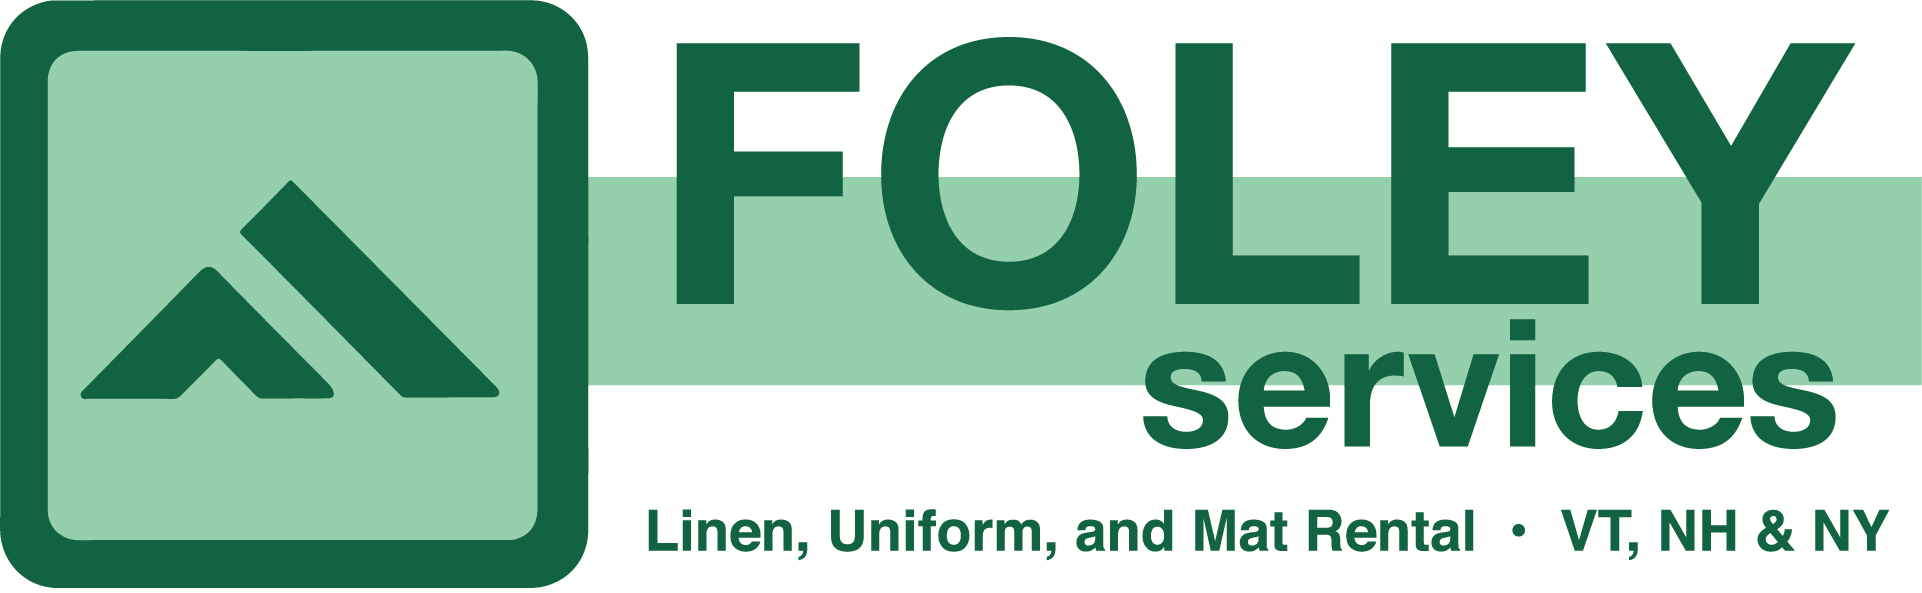 Foley Services – Your Image Solution - Linen Rentals, Uniform Rentals, Dust Control